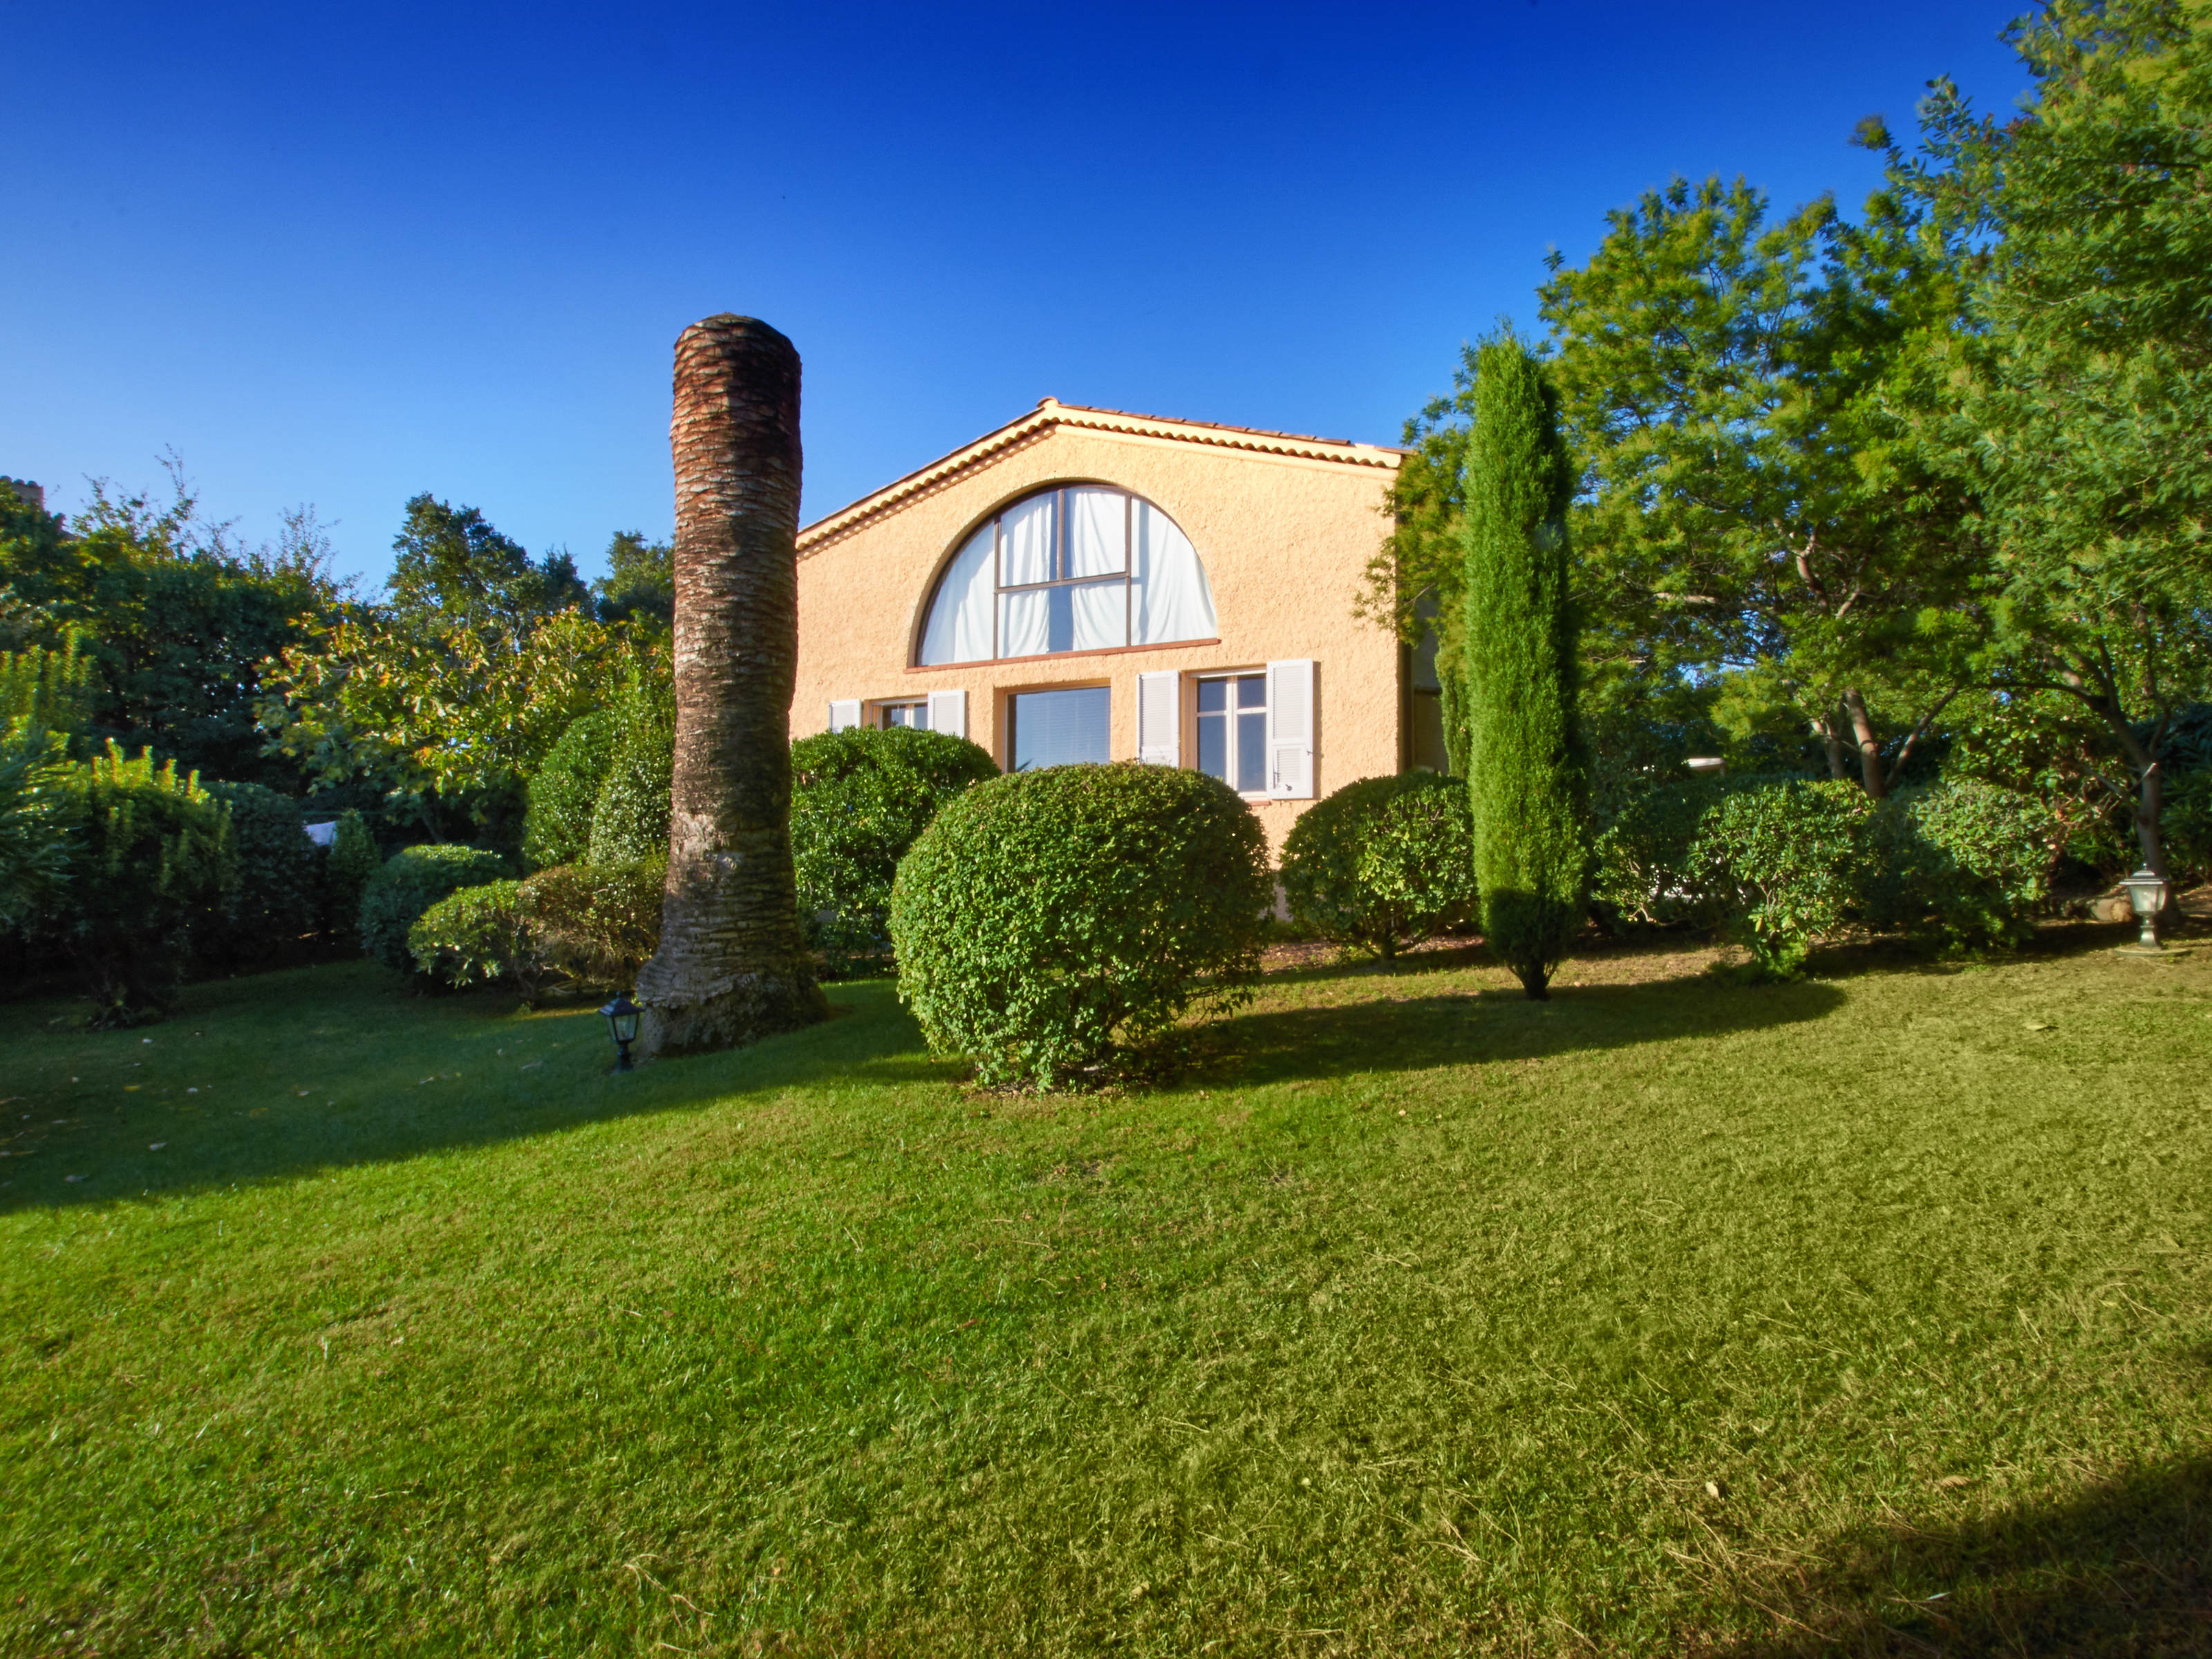 Single Family Home for Sale at Residential area of Cannes, villa for sale with sea views Mougins Mougins, Provence-Alpes-Cote D'Azur 06220 France